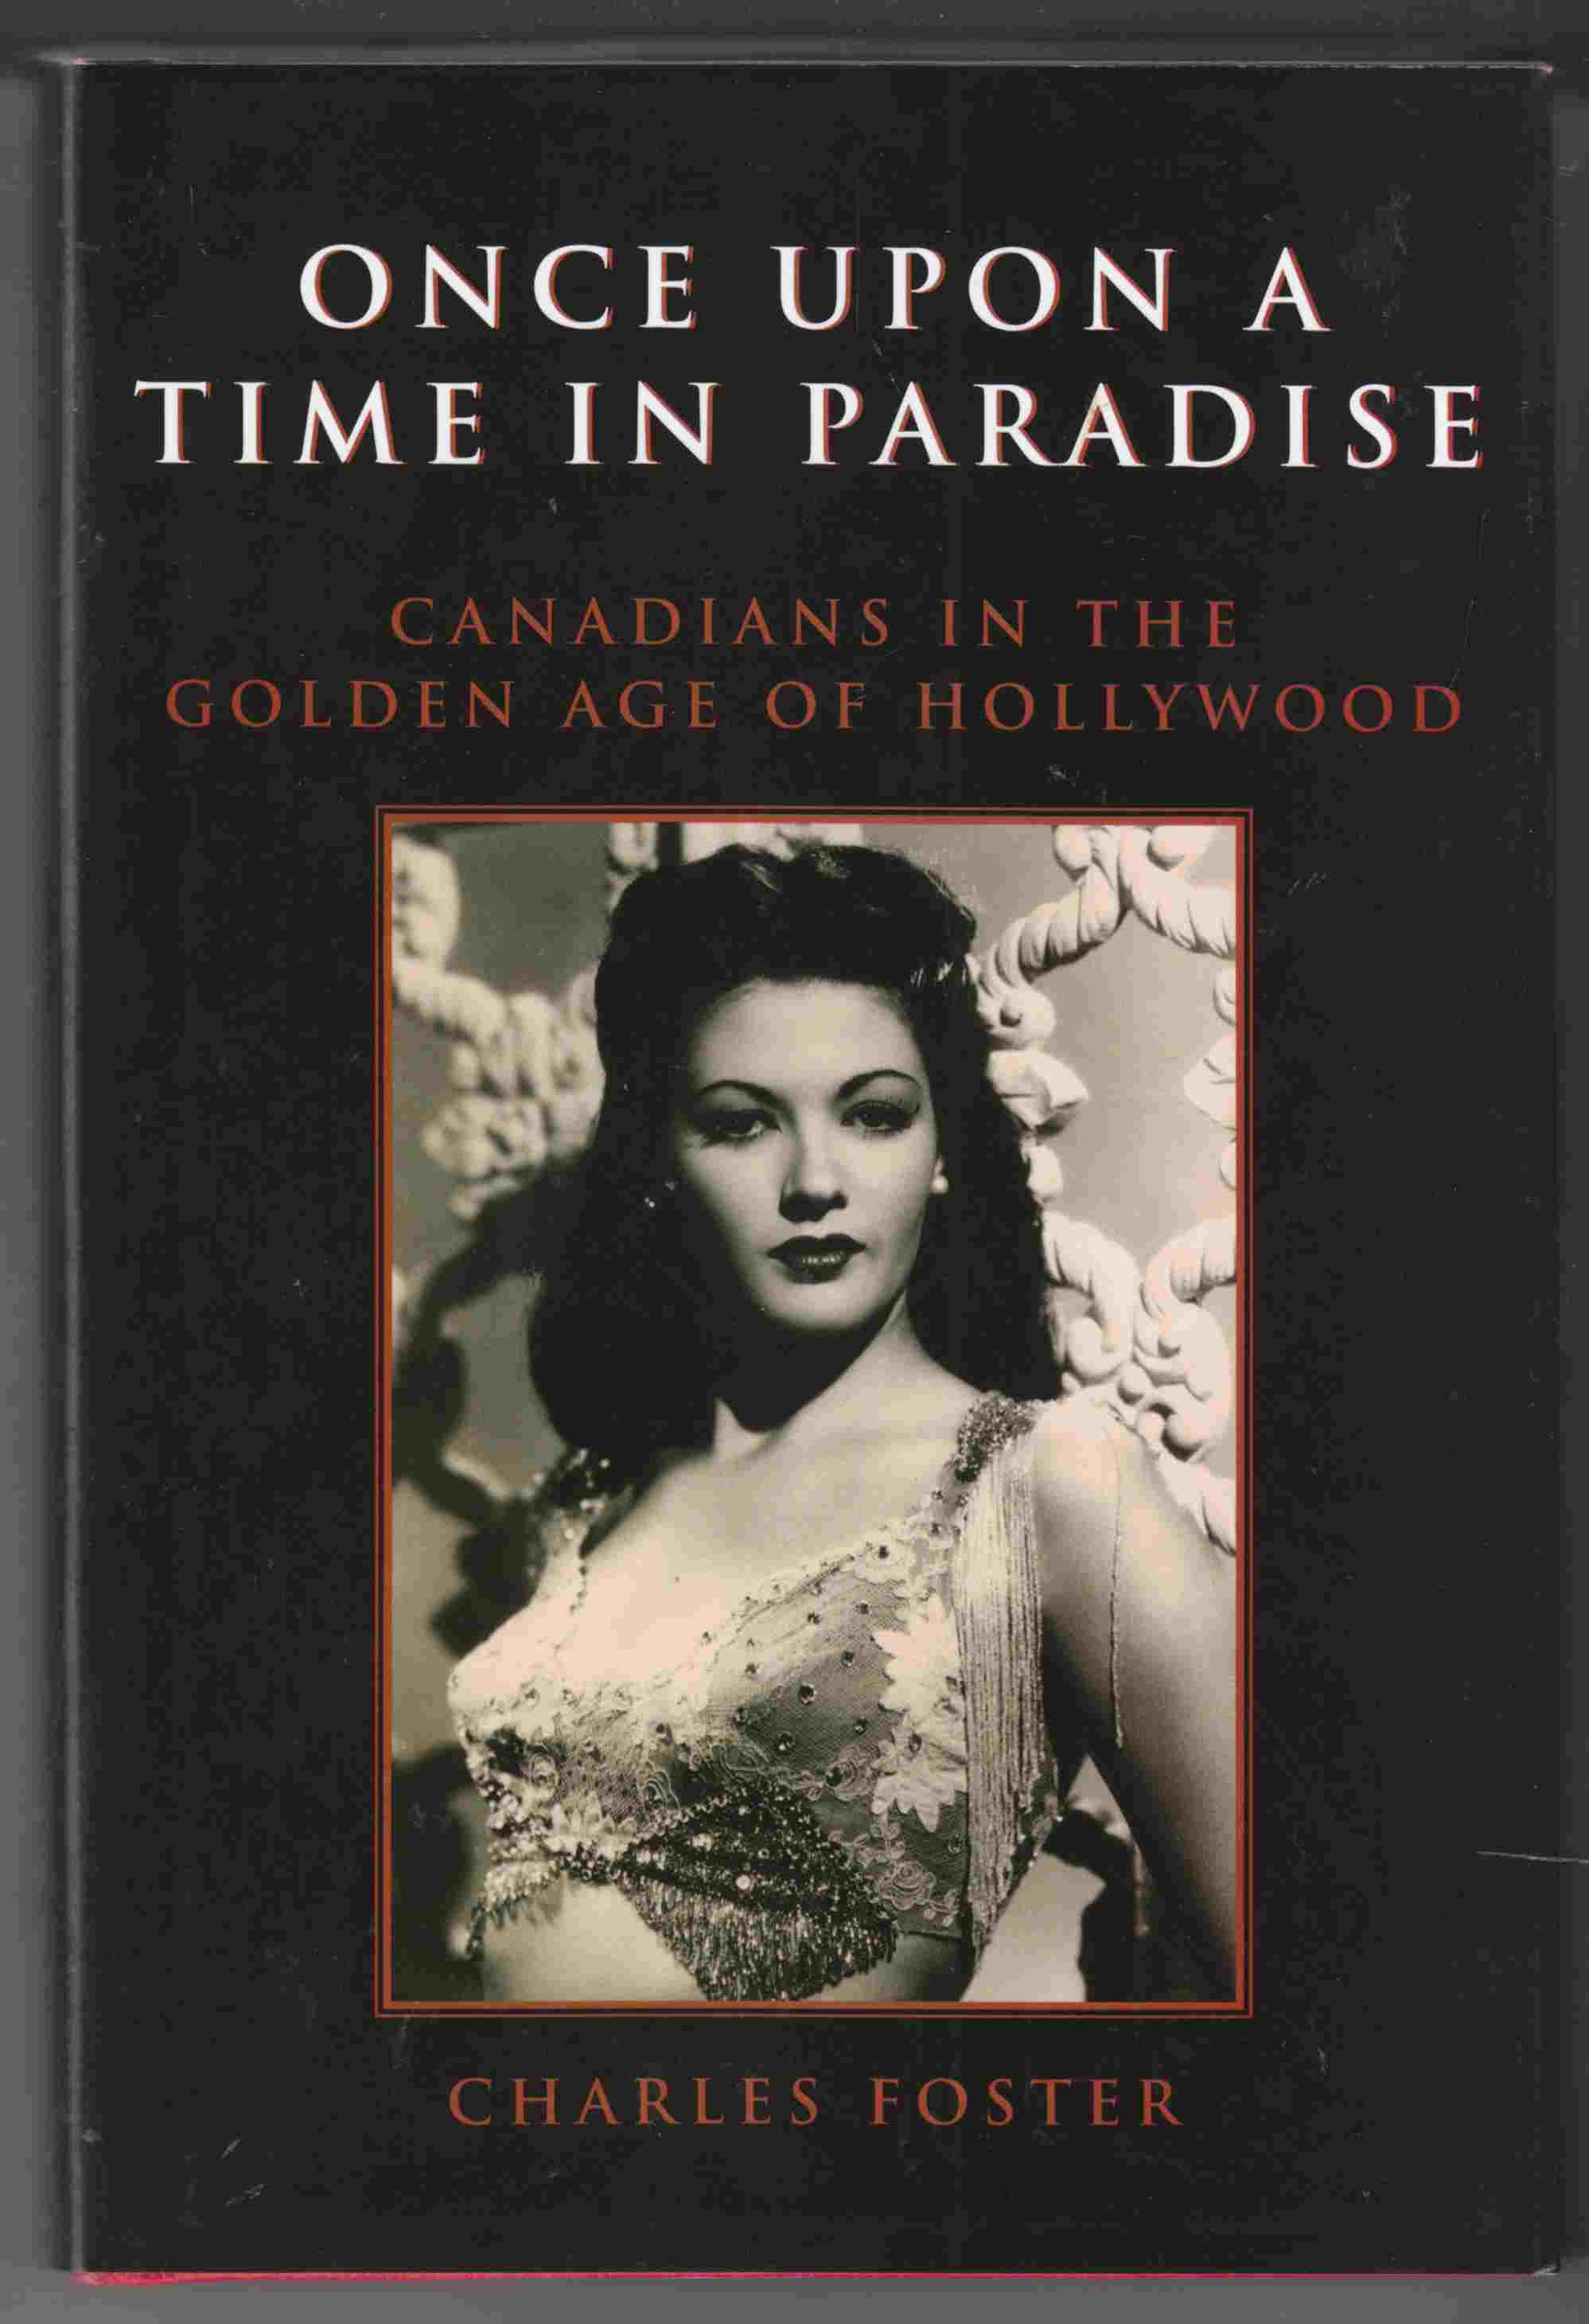 Image for Once Upon a Time in Paradise Canadians in the Golden Age of Hollywood